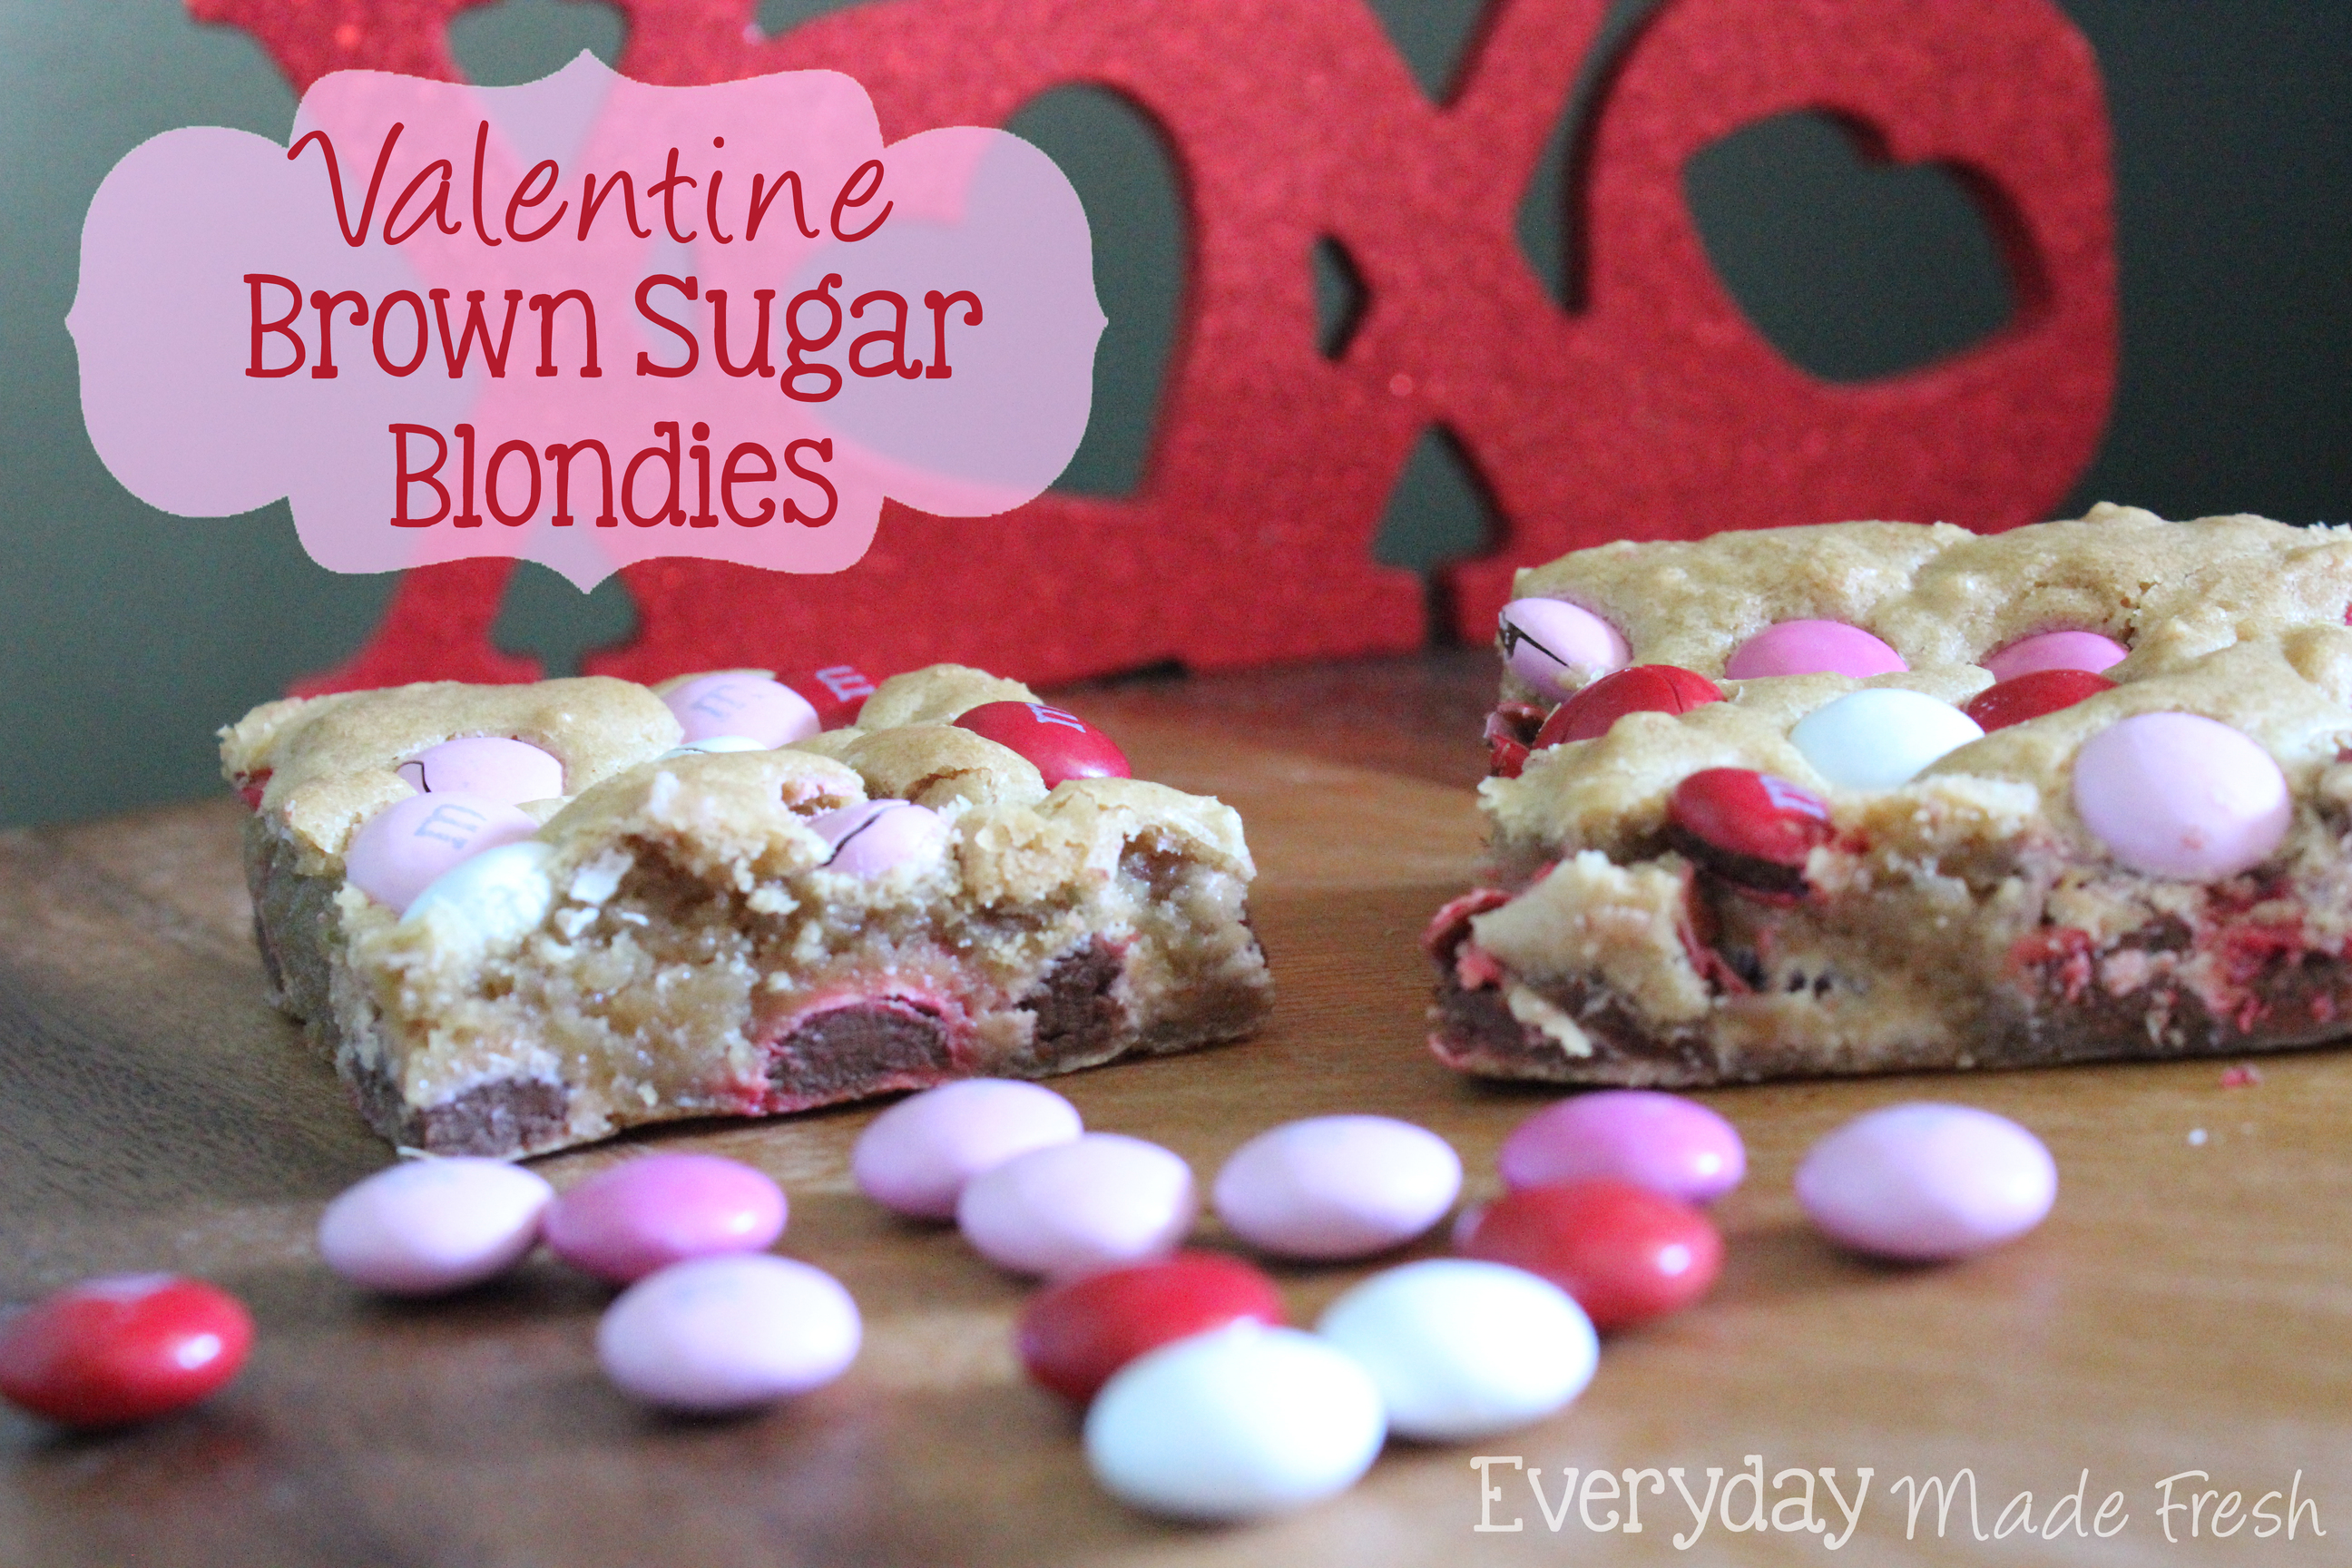 Brown Sugar Blondies are the perfect treat to serve up on Valentine's Day or any day! Soft warm hints of brown sugar and vanilla, with a pop of color from the M&M's. | OHMY-CREATIVE.COM via EverydayMadeFresh.com